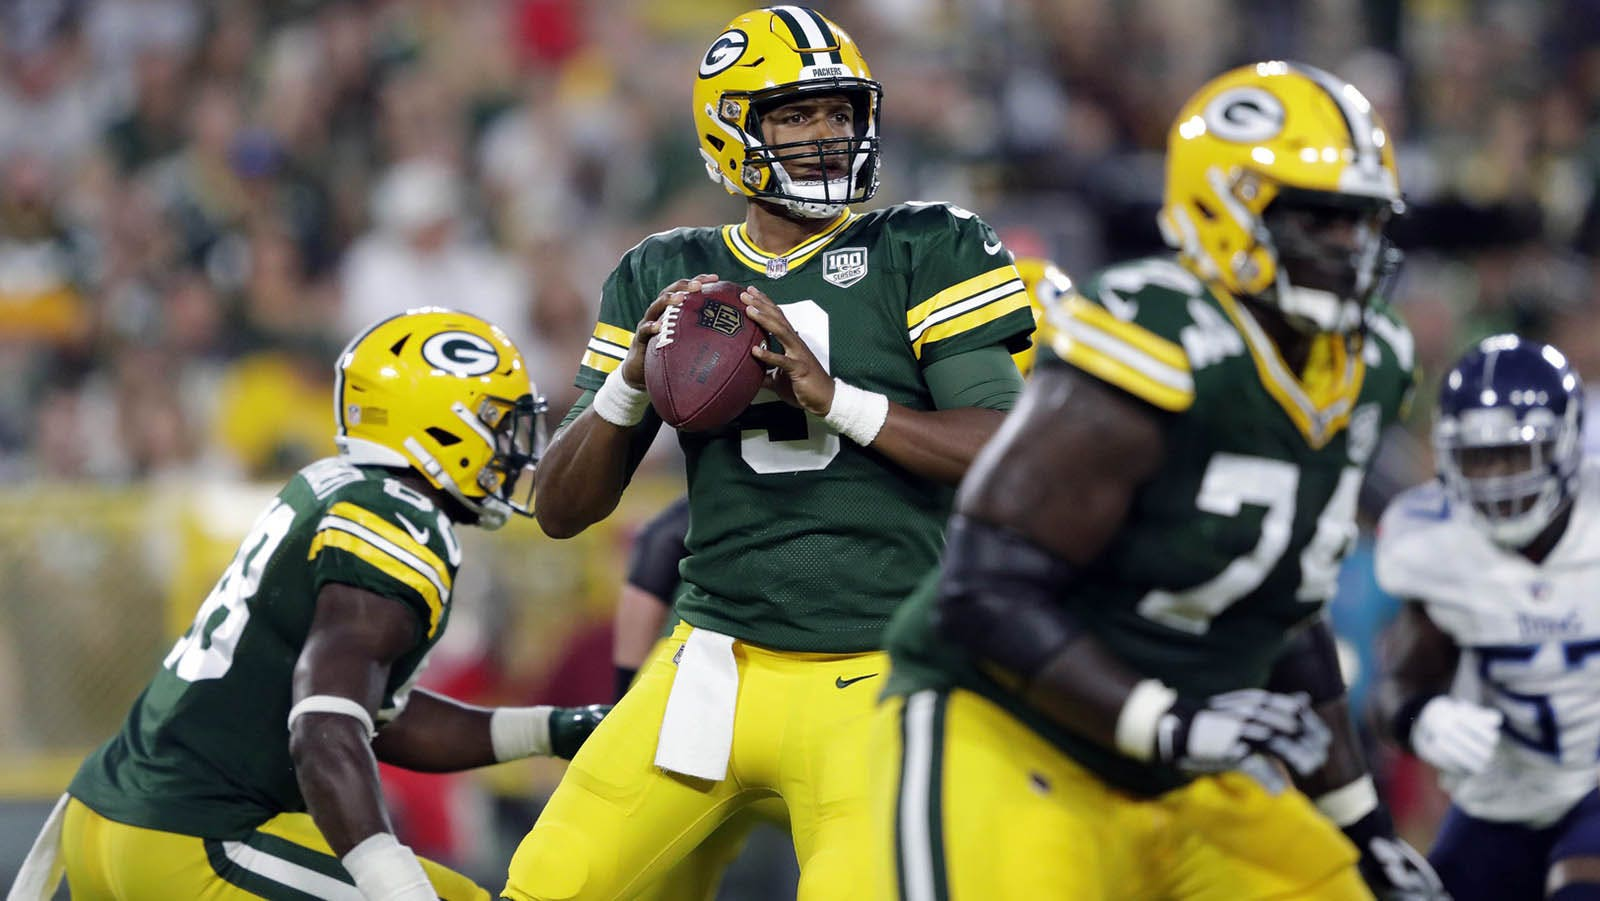 Packers get down to 53-man roster, cut Kizer | FOX Sports